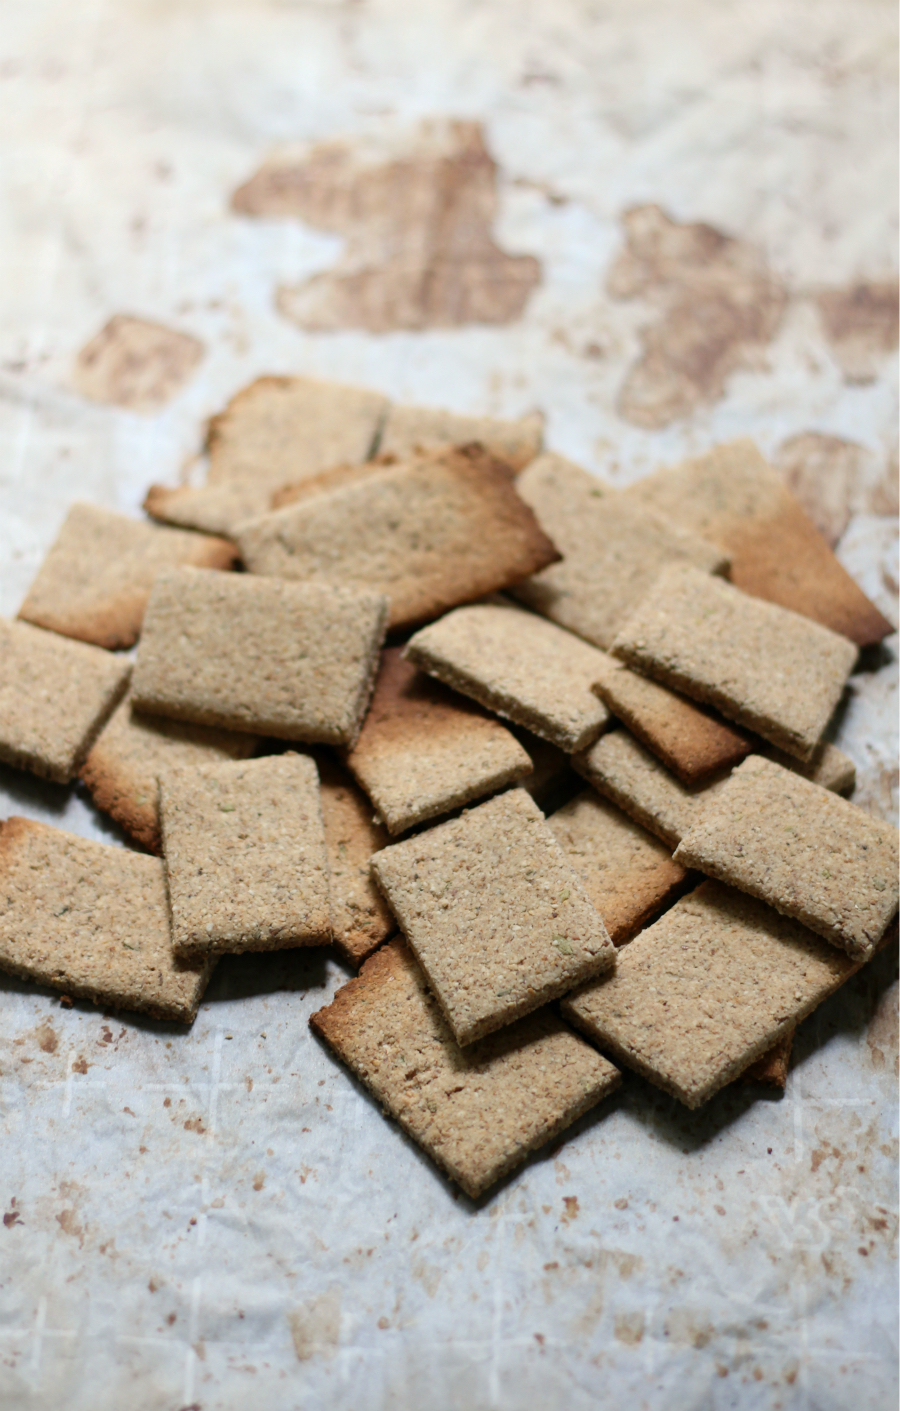 Savory Italian Tigernut Flour Crackers (Gluten-Free, Vegan, Paleo) | Strength and Sunshine @RebeccaGF666 A healthy and delicious grain-free snack! Savory Italian Tigernut Flour Crackers, easy and homemade, baked in the oven, and gluten-free, vegan, paleo, and allergy-free! They are perfect for an everyday snack or a fancy addition to an appetizer platter!